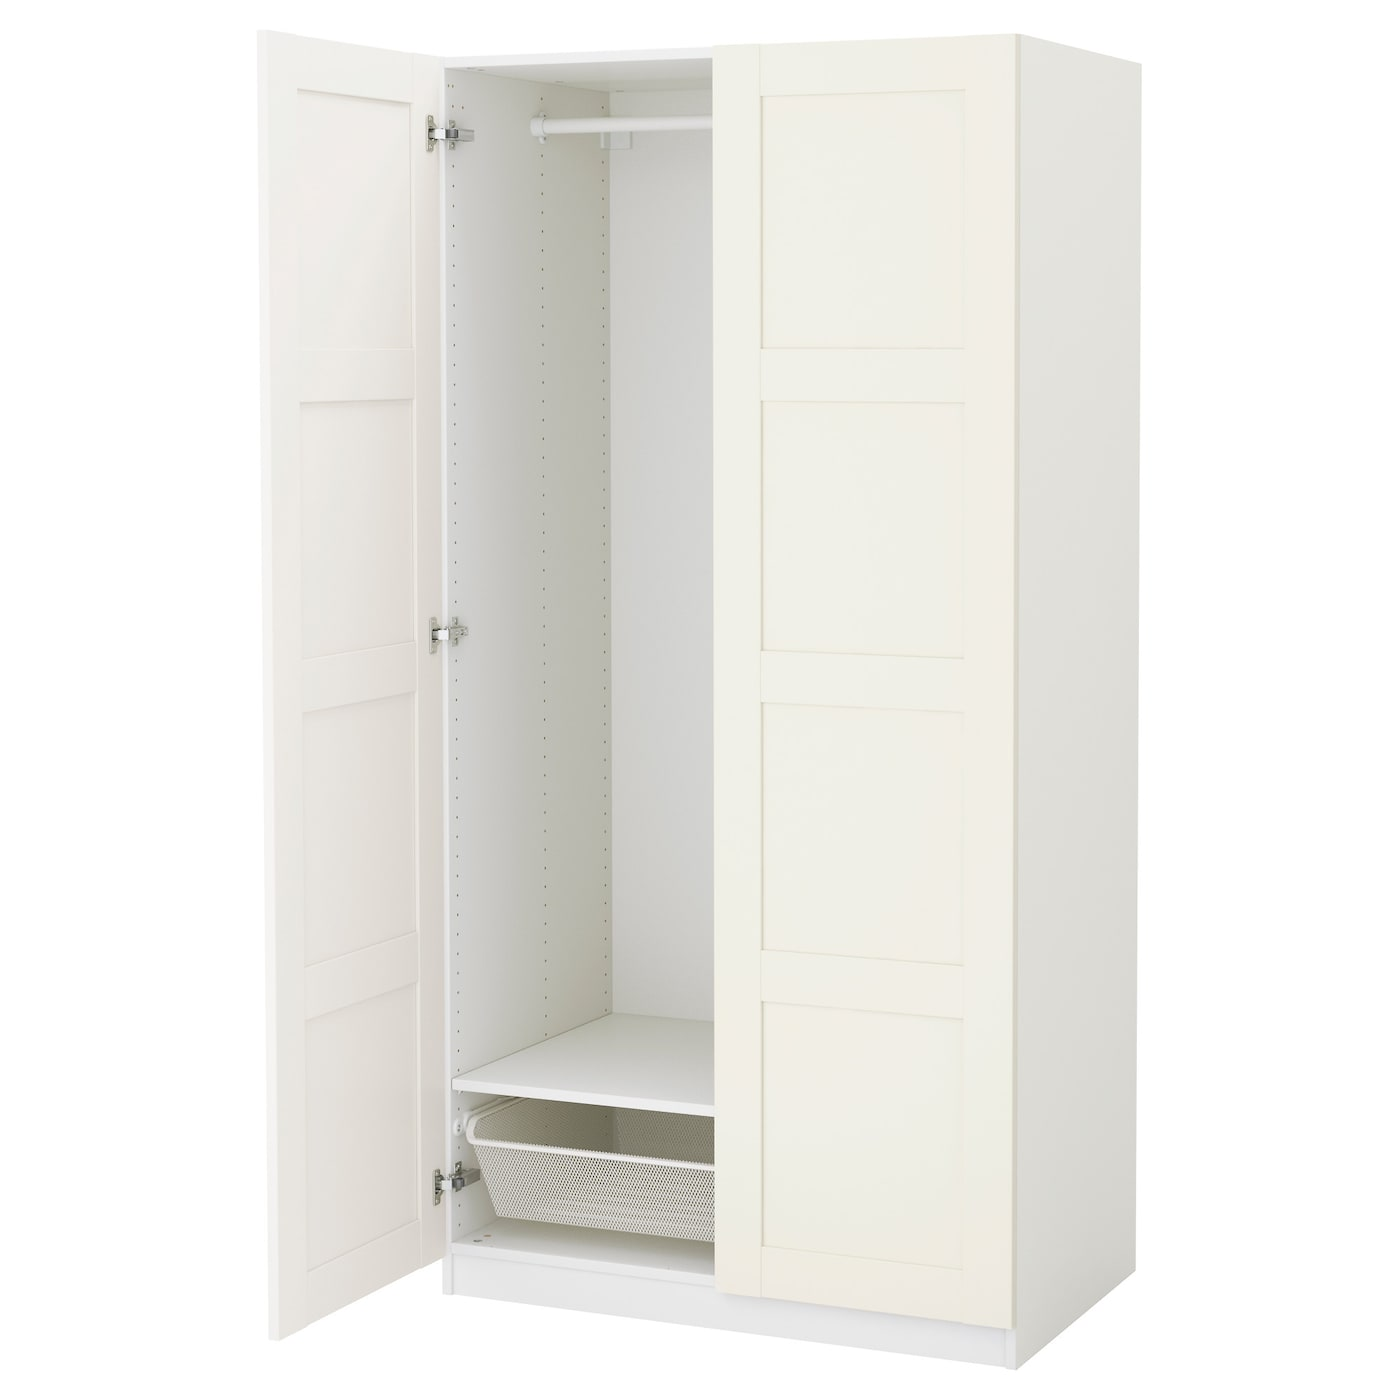 white ikea wardrobe effect p stained oak photo shelves pax frame